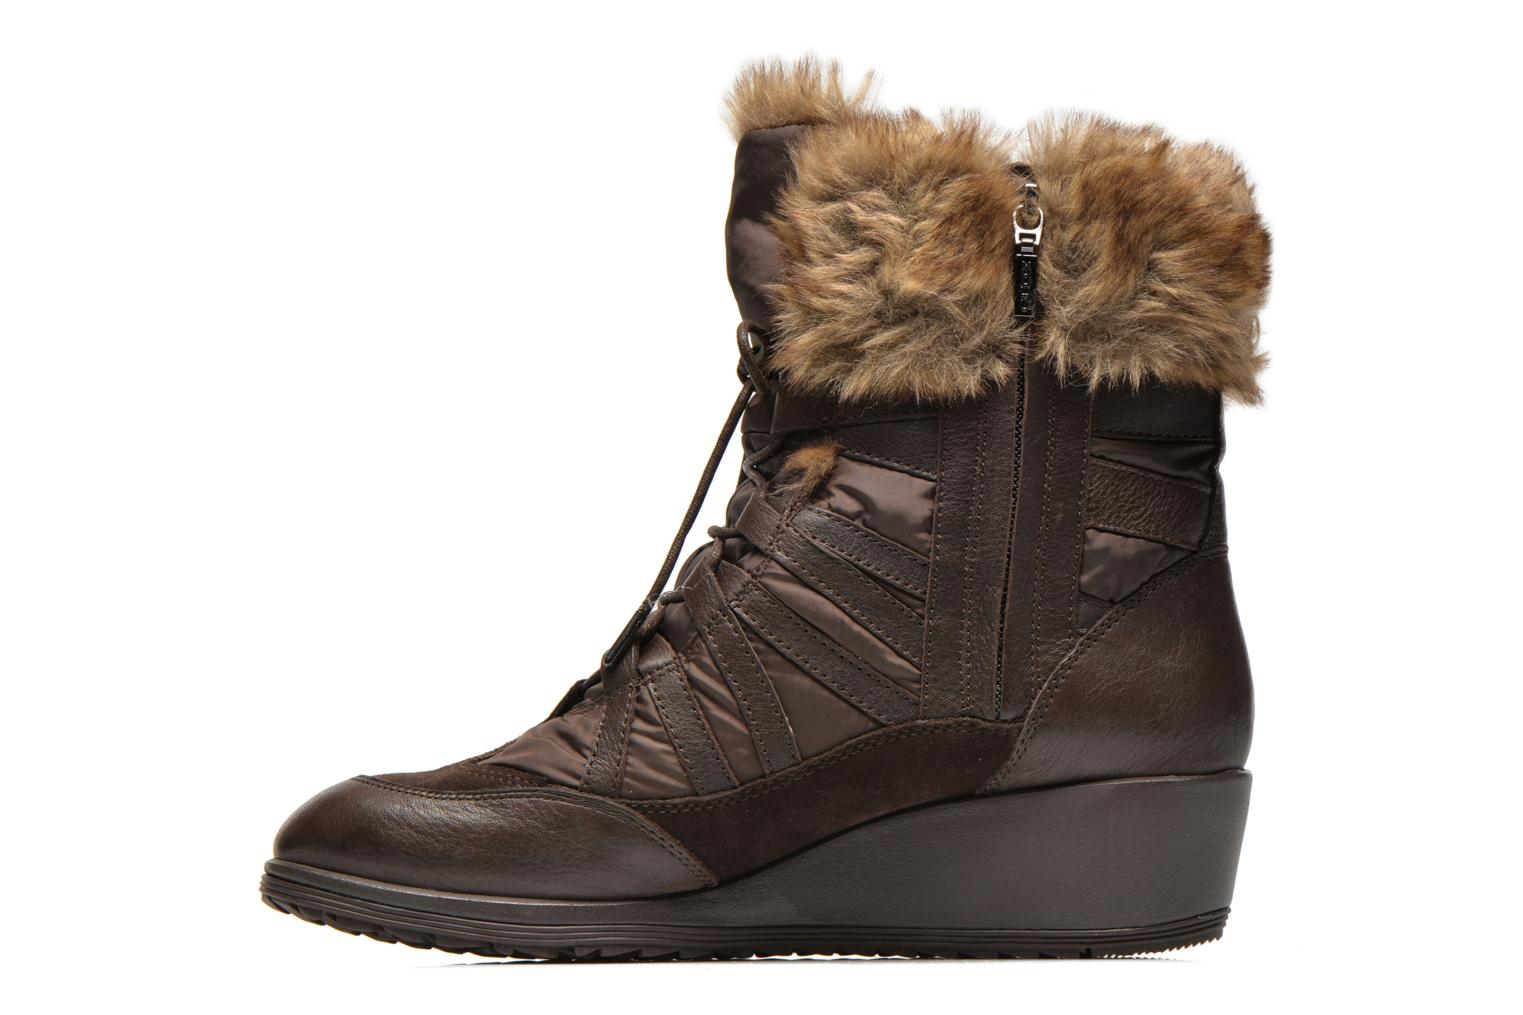 Bottines et boots Geox D HENNIE B D44Y3B Marron vue face